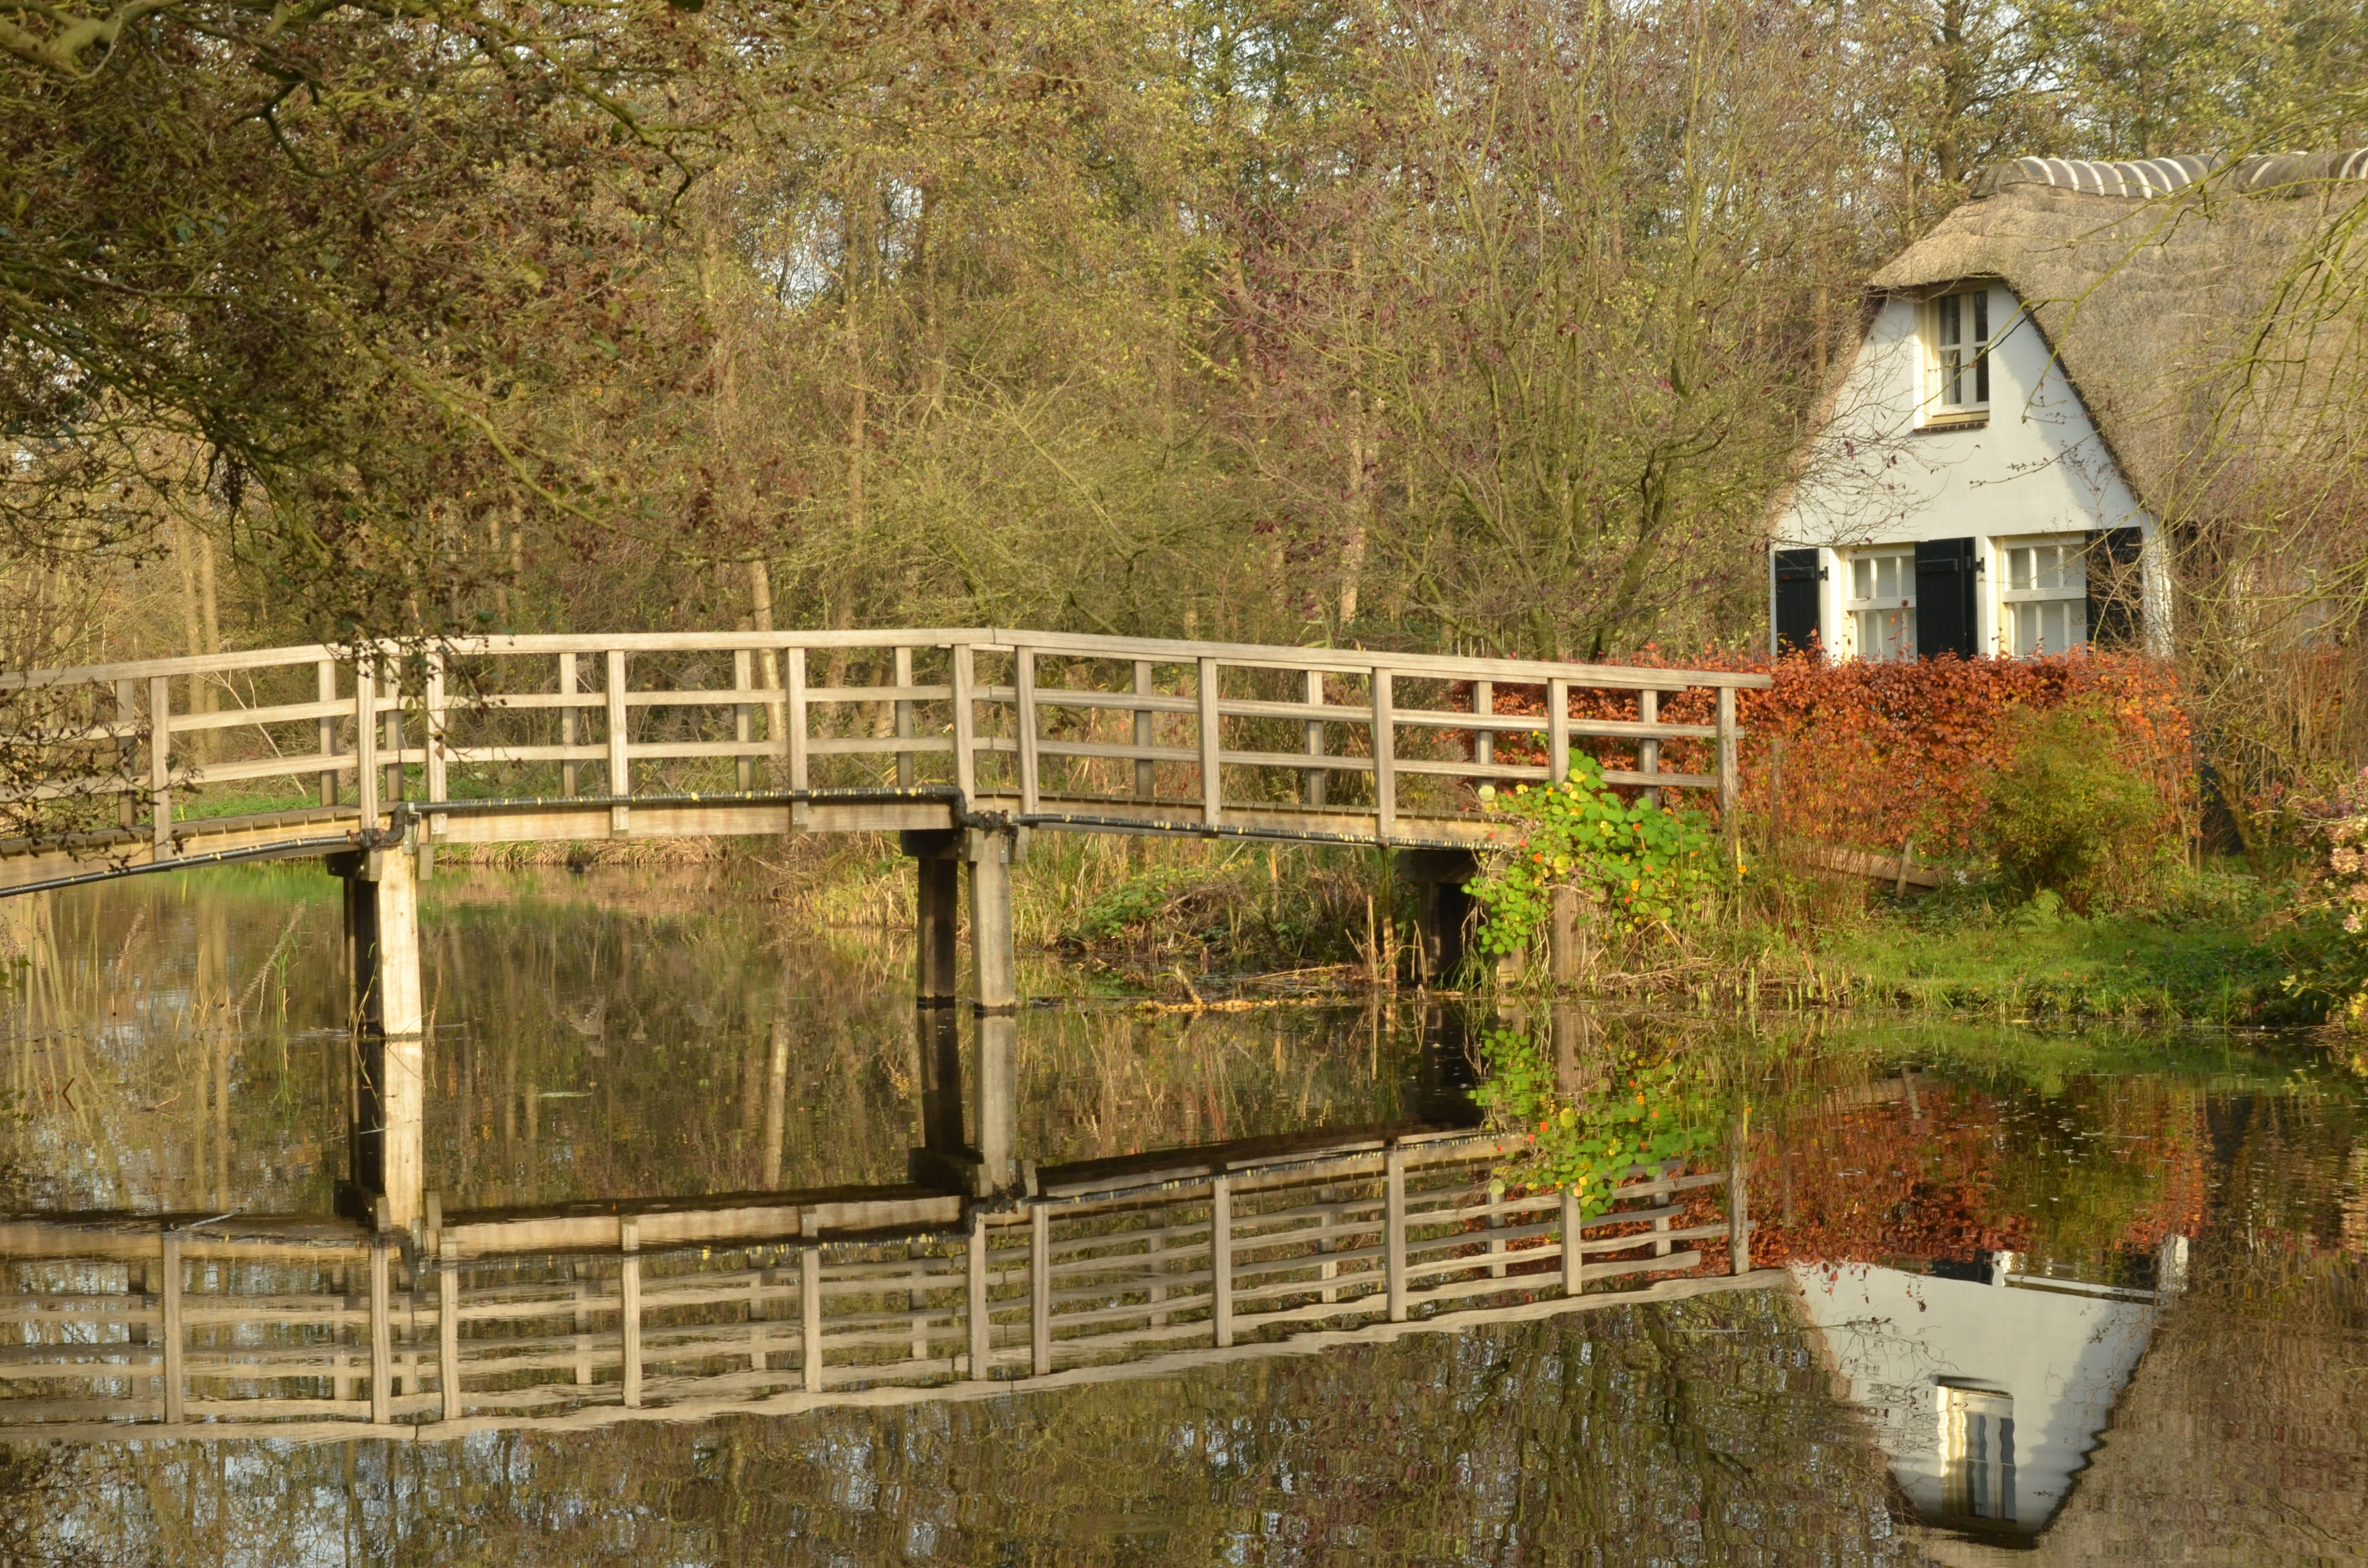 White Bridge over Body of Water Near House and Trees, Architecture, Outdoors, Wooden, Water, HQ Photo